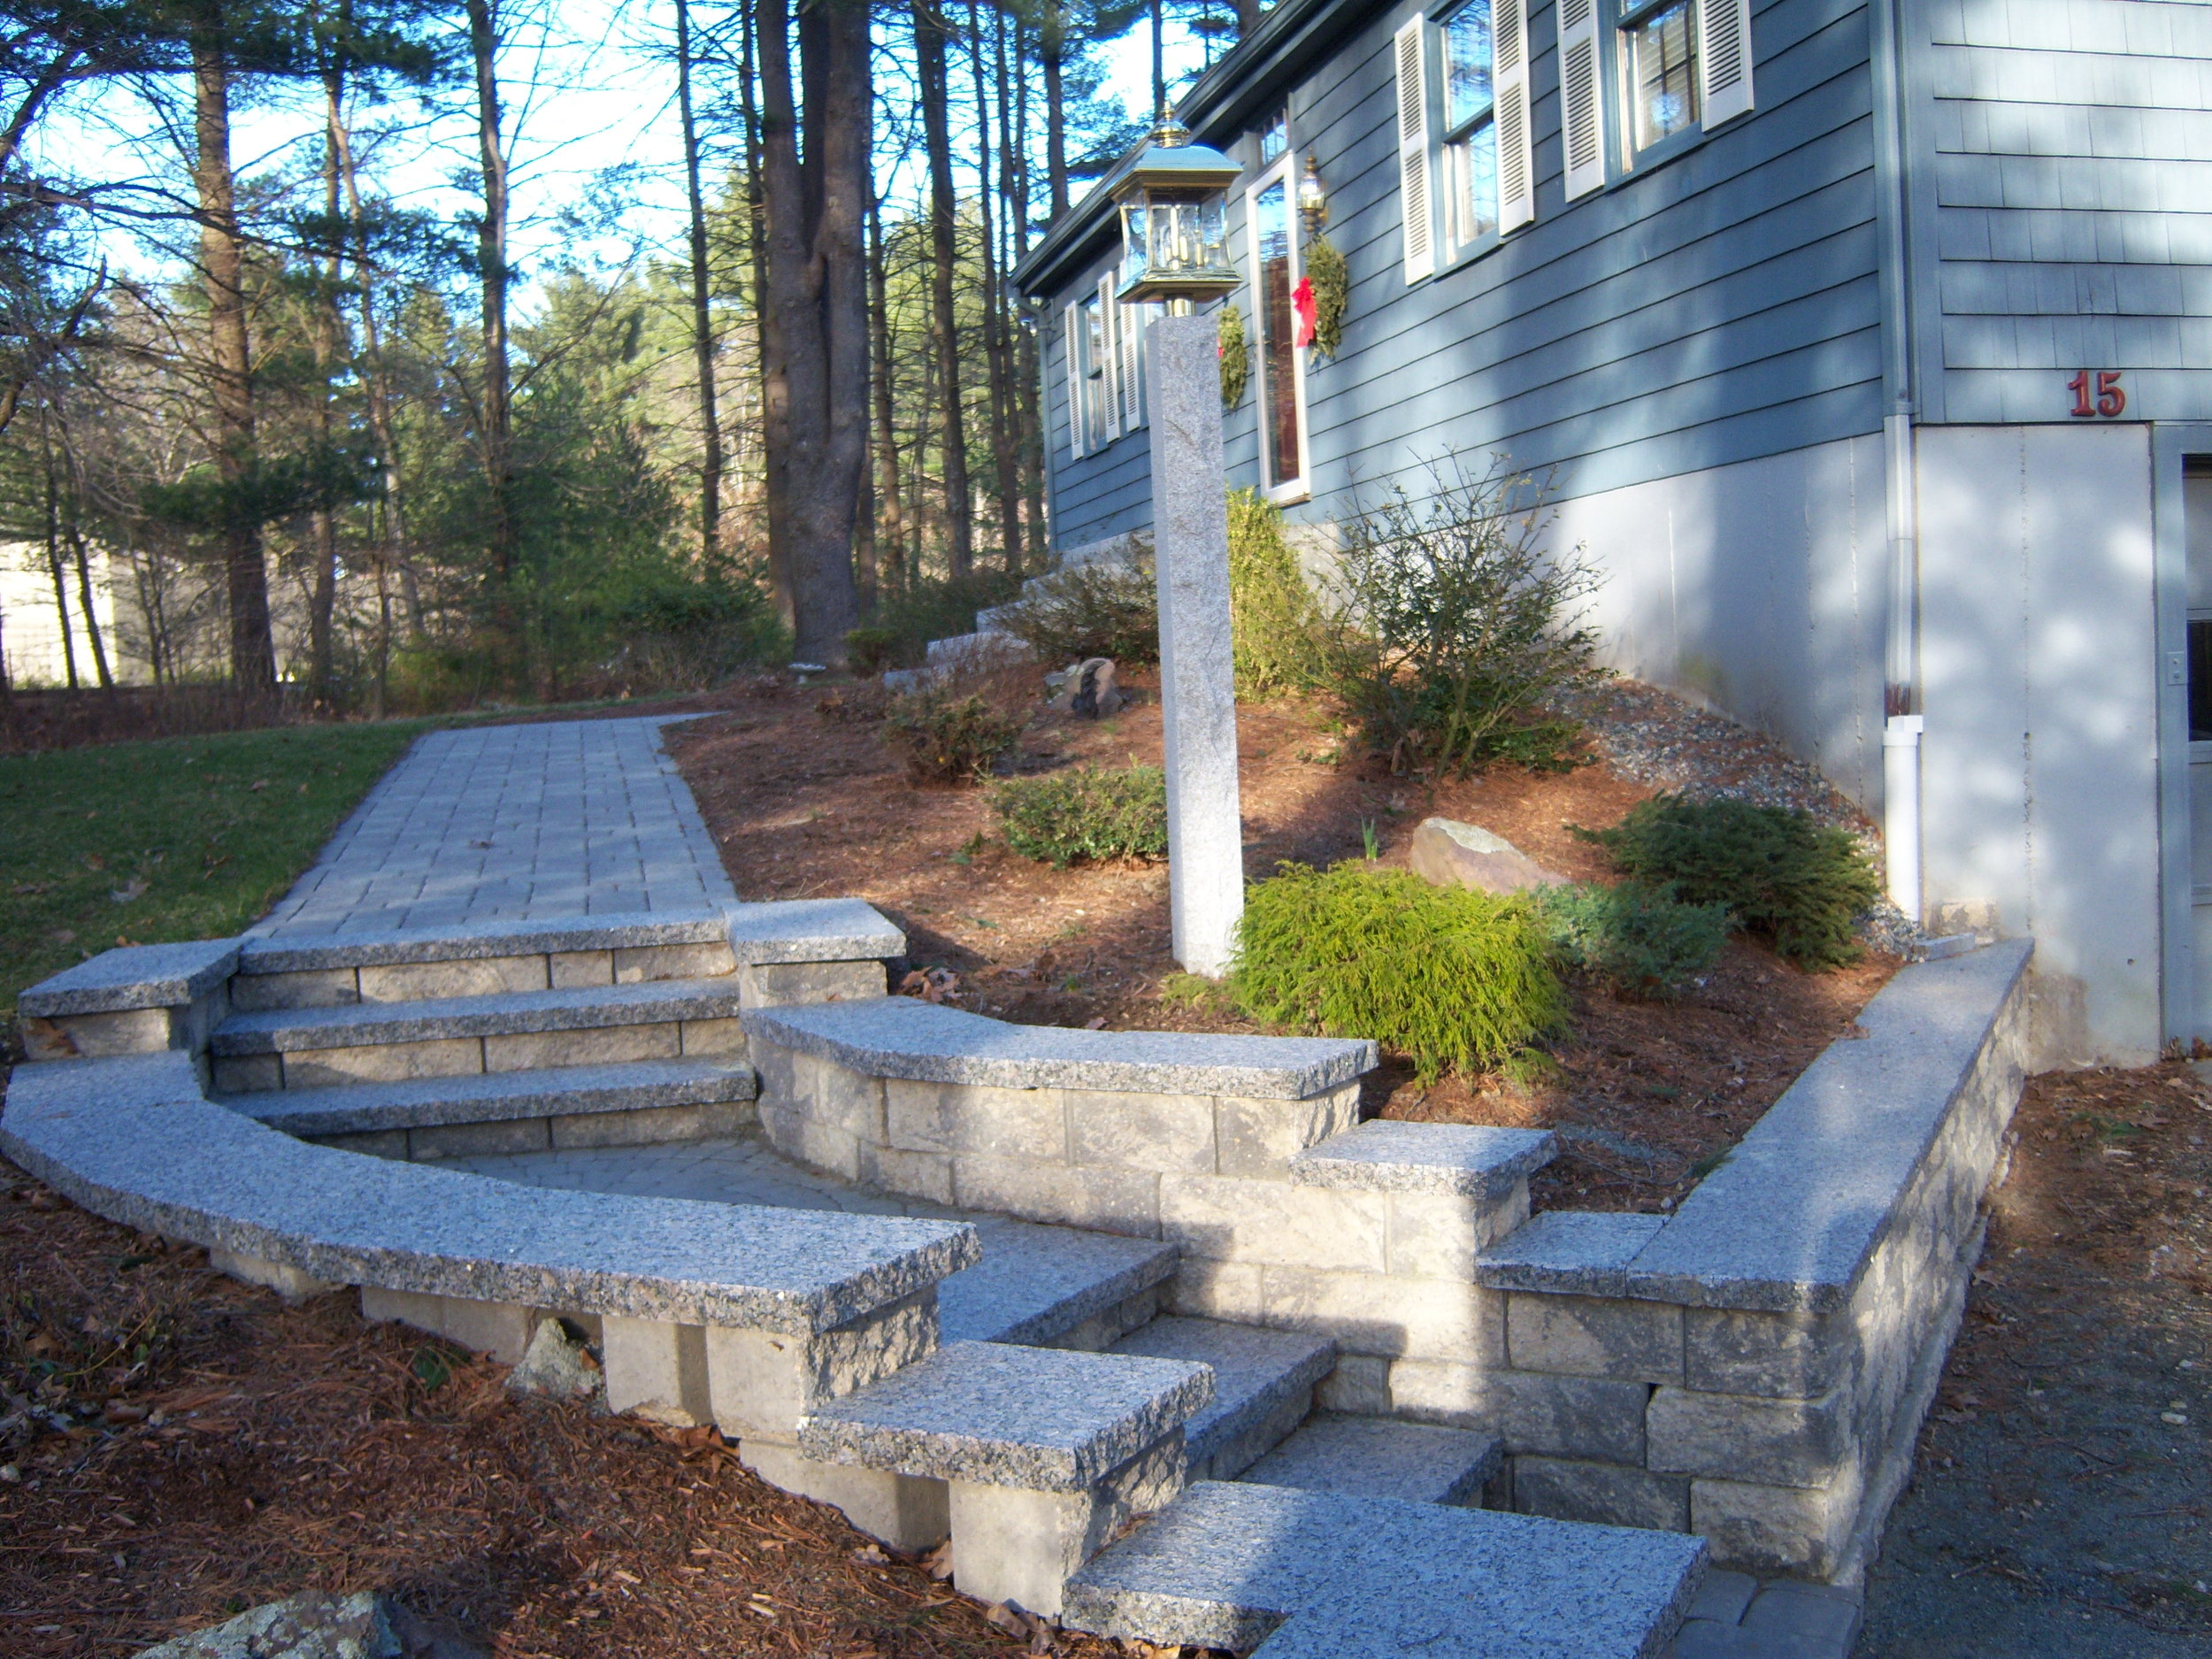 Experienced retaining wall and patio installation in Weston Massachusetts